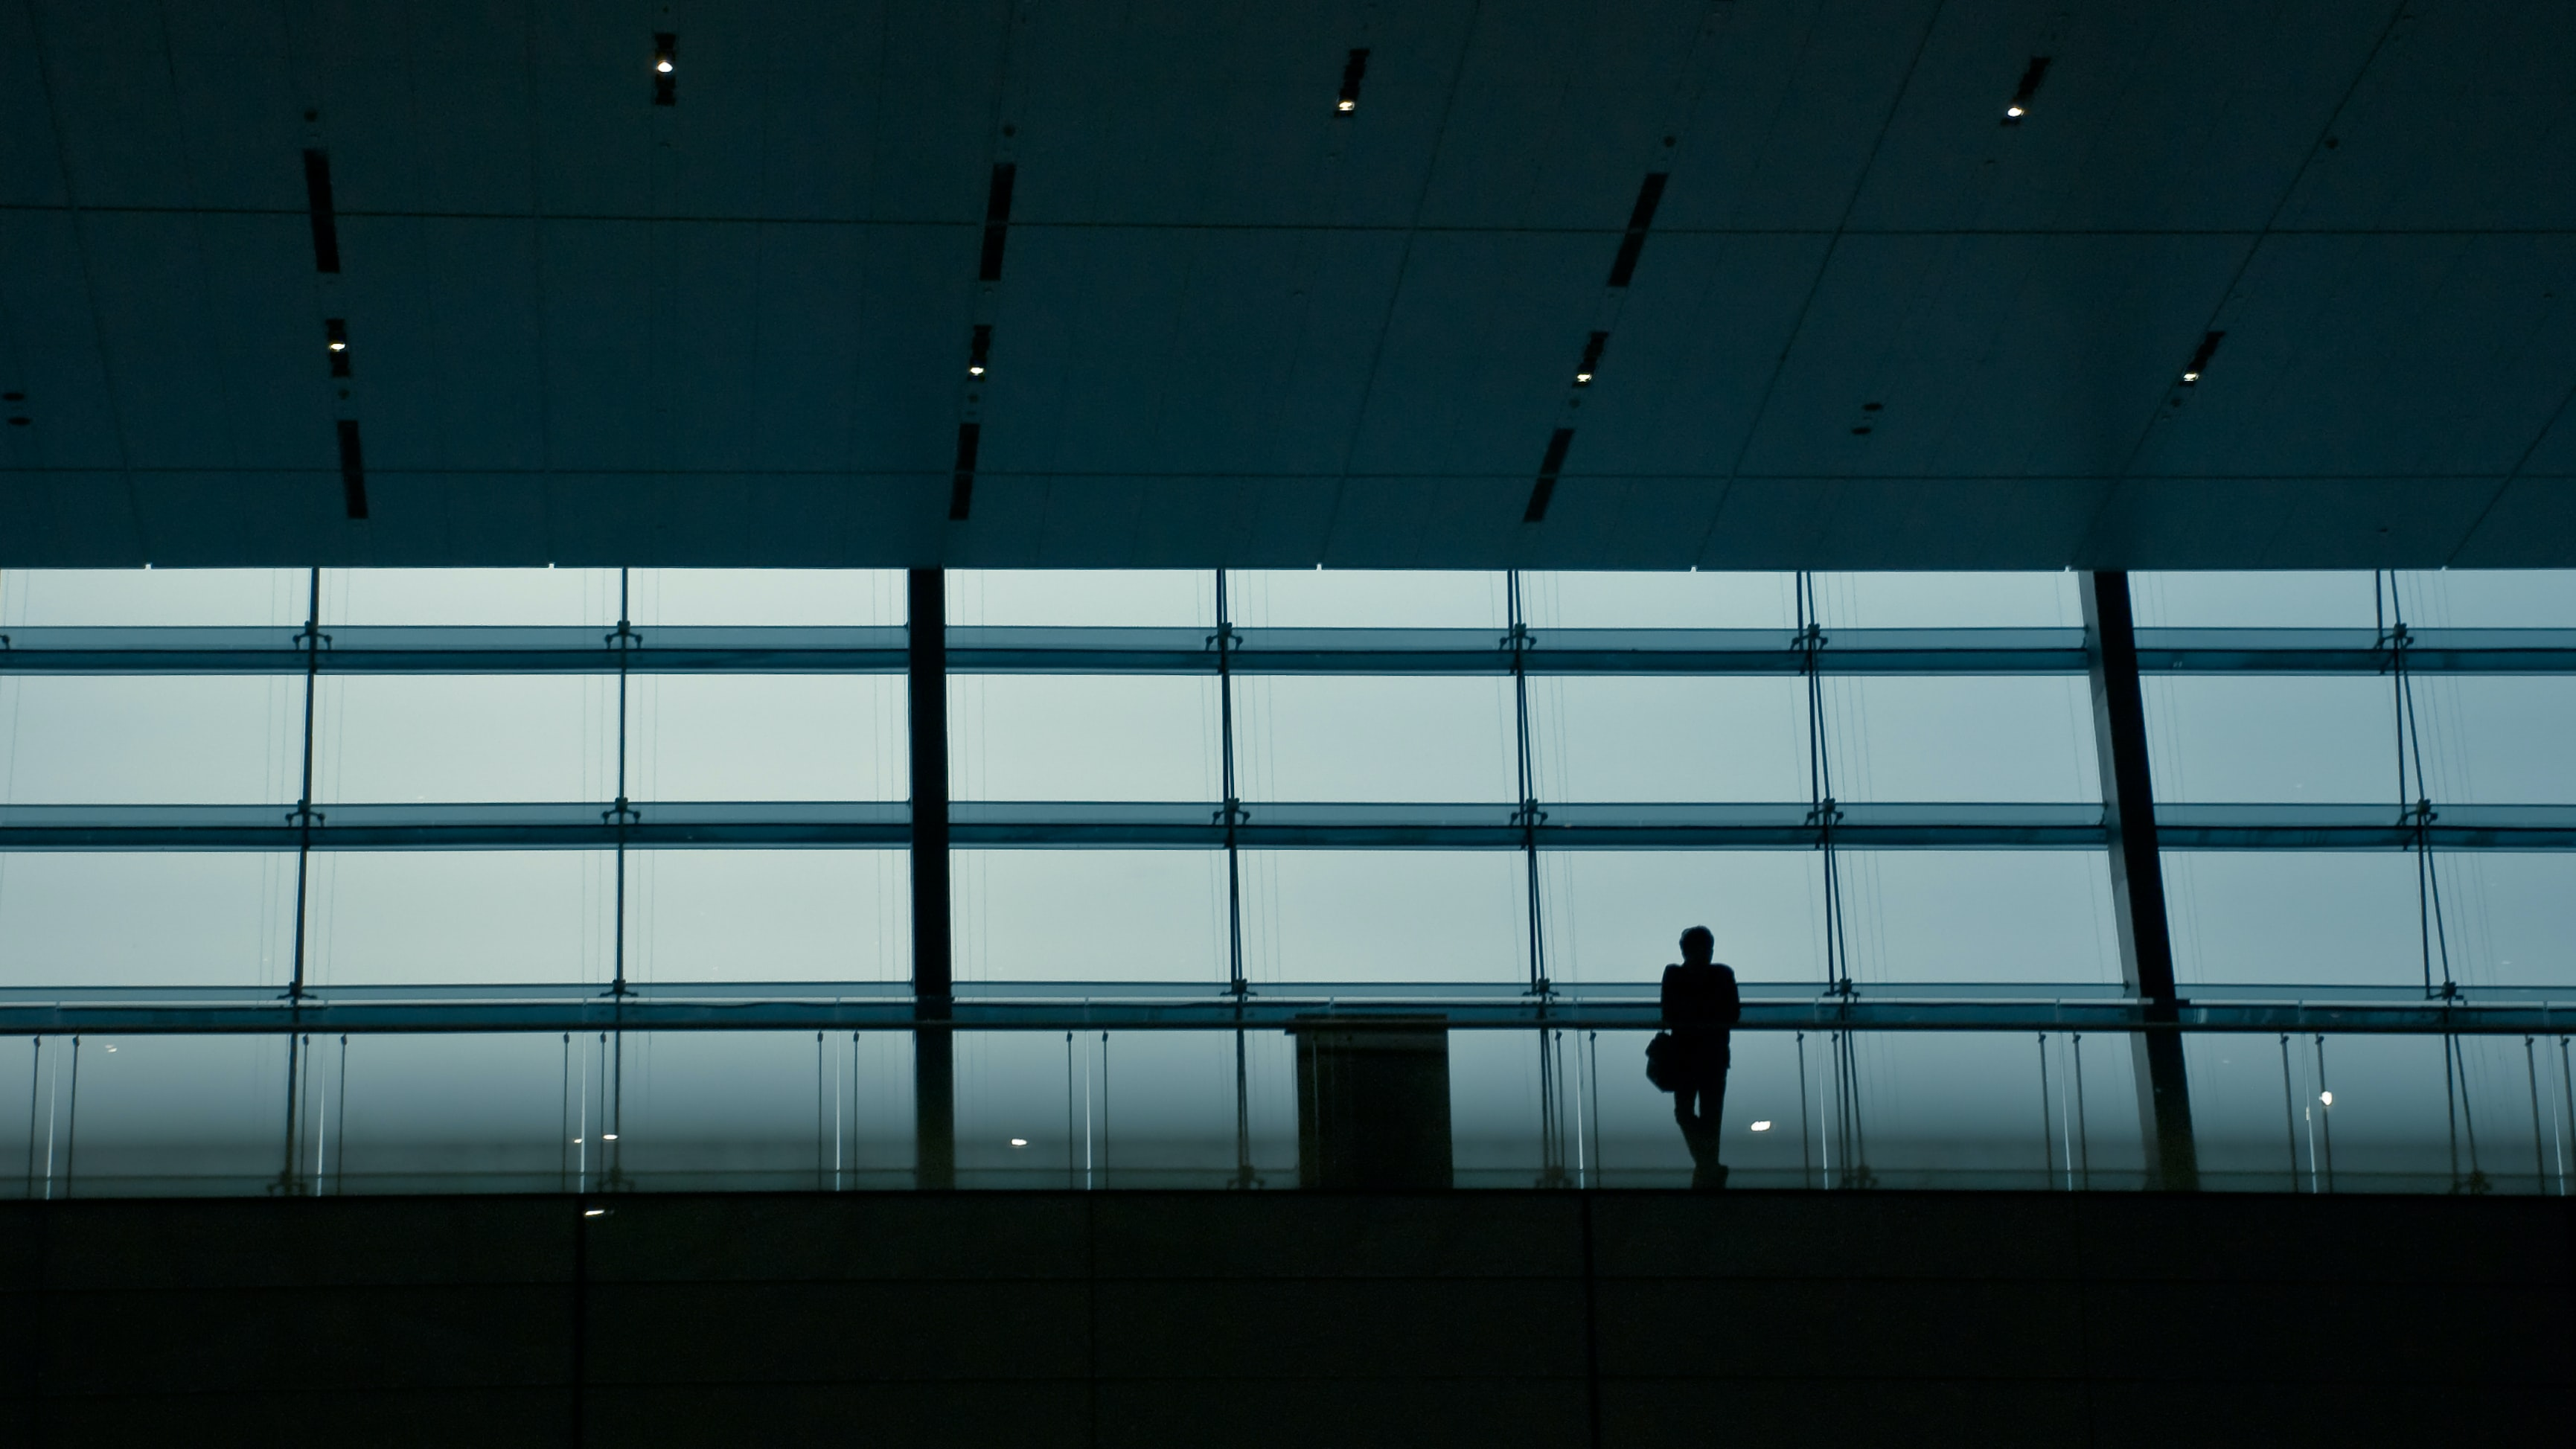 silhouette photography of person standing behind glass wall